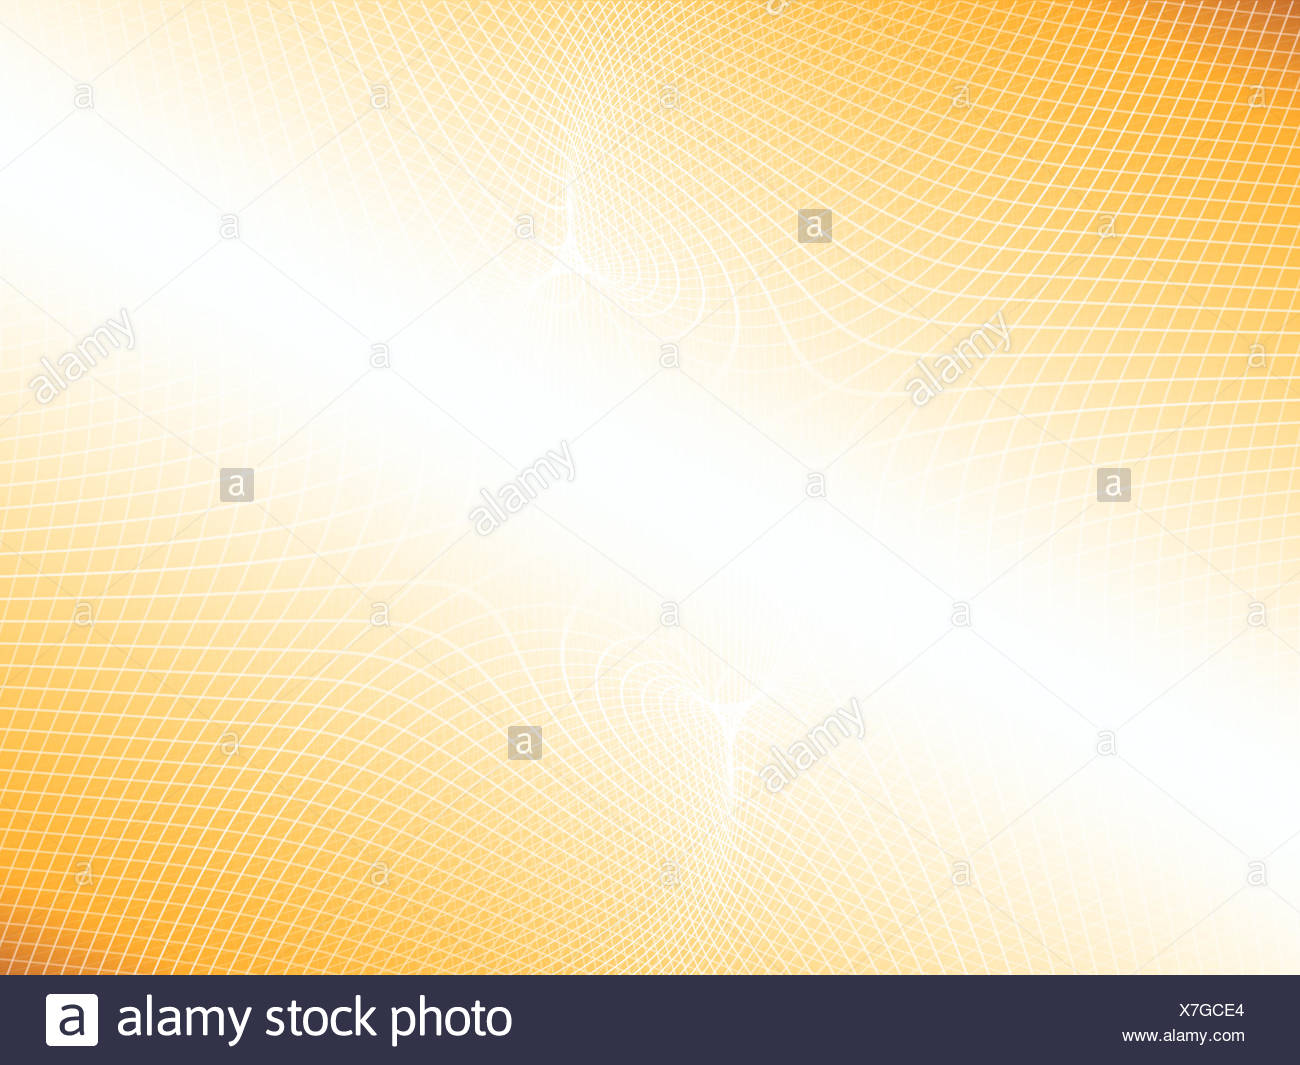 abstract wallpaper pattern - Stock Image